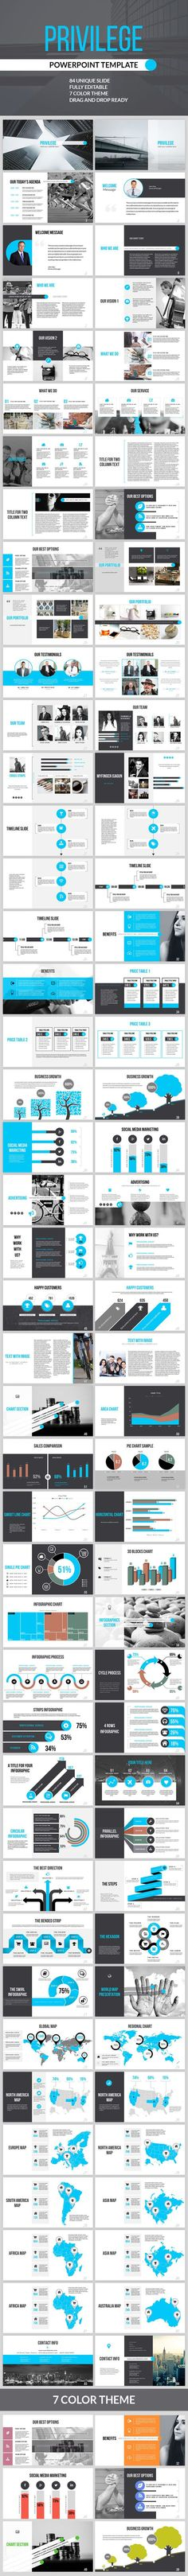 Business Plan Powerpoint  Marketing Presentation Business